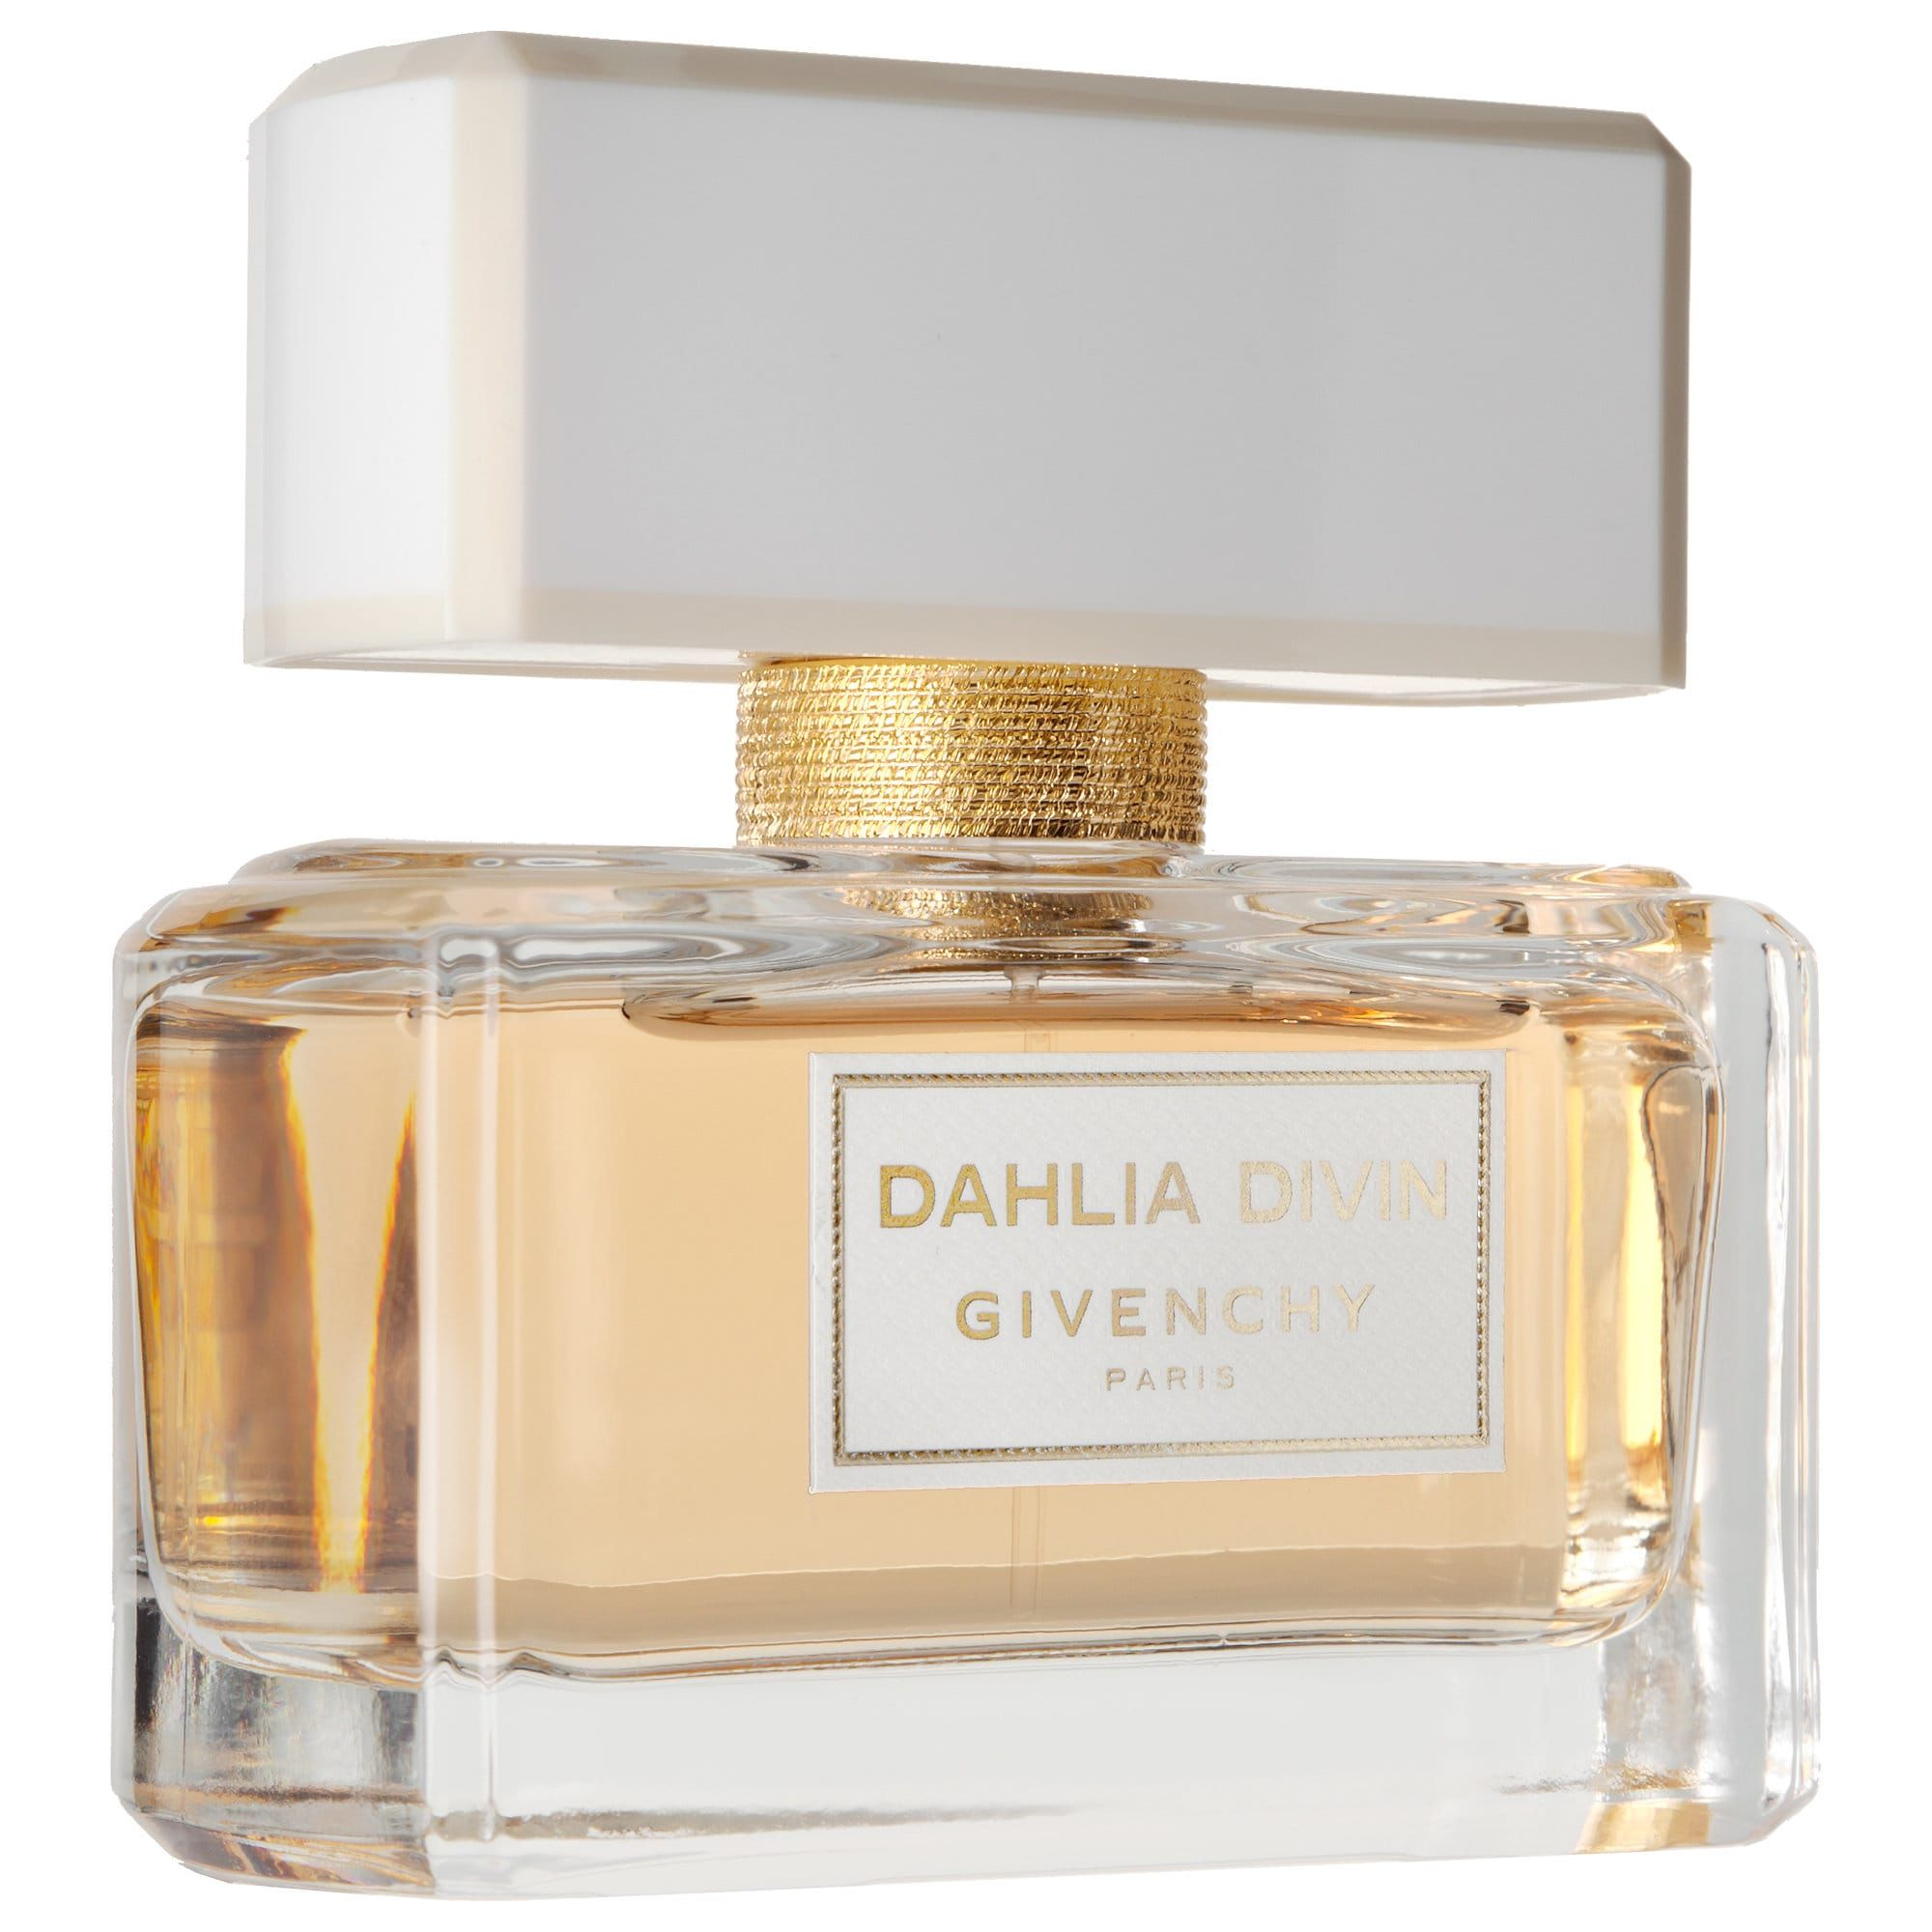 Parfum Divin Dahlia 1Products 2019 Givenchy In Lc354RjAq